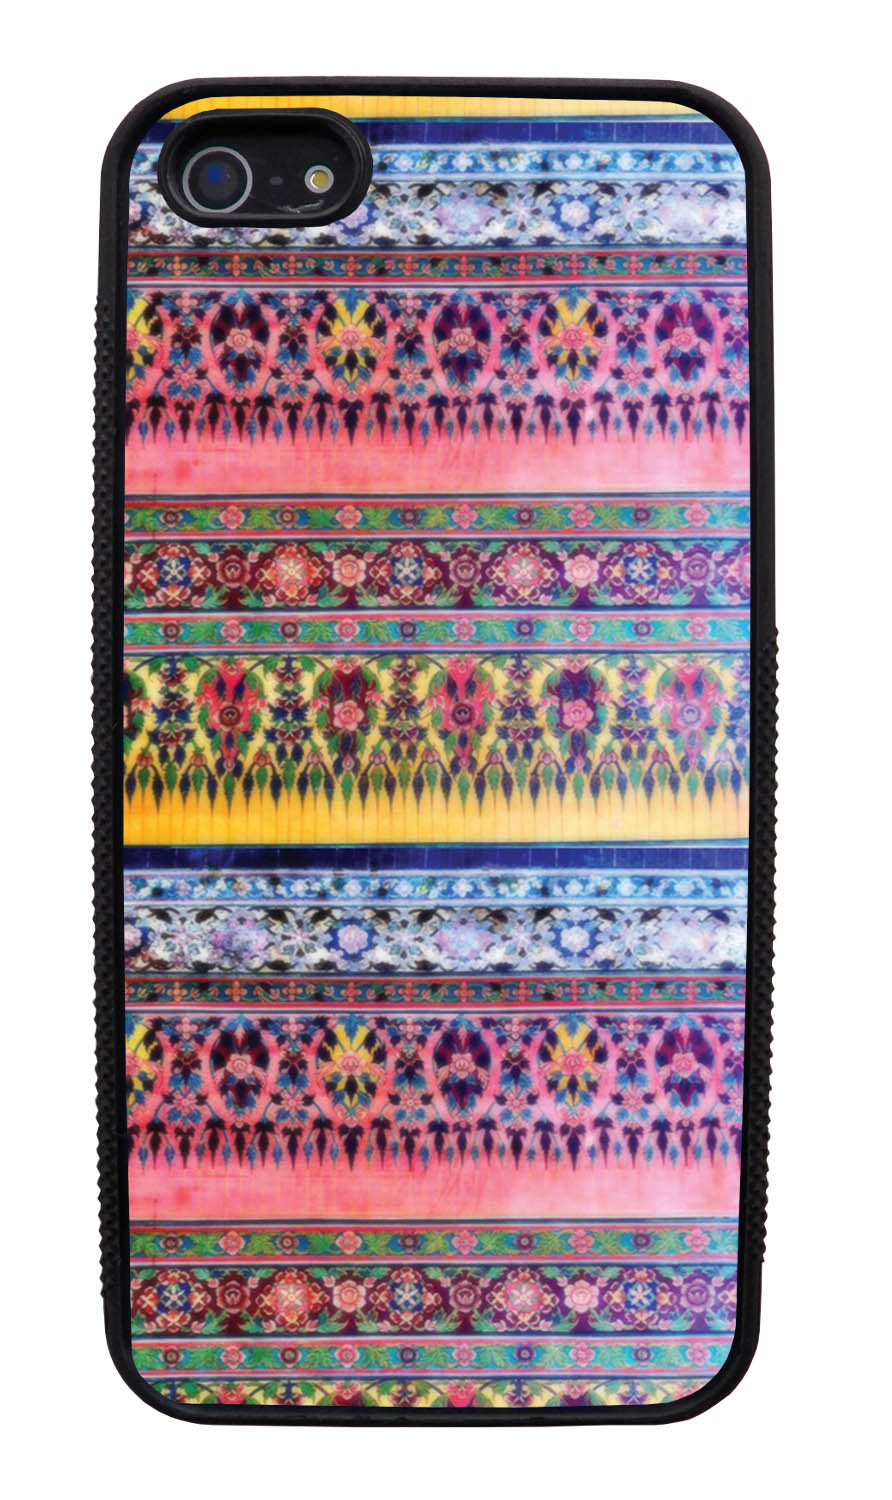 Apple iPhone 5 / 5S Aztec Case - Winter Pink and Yellow - Ceramic Glaze Like - Black Slim Rubber Case